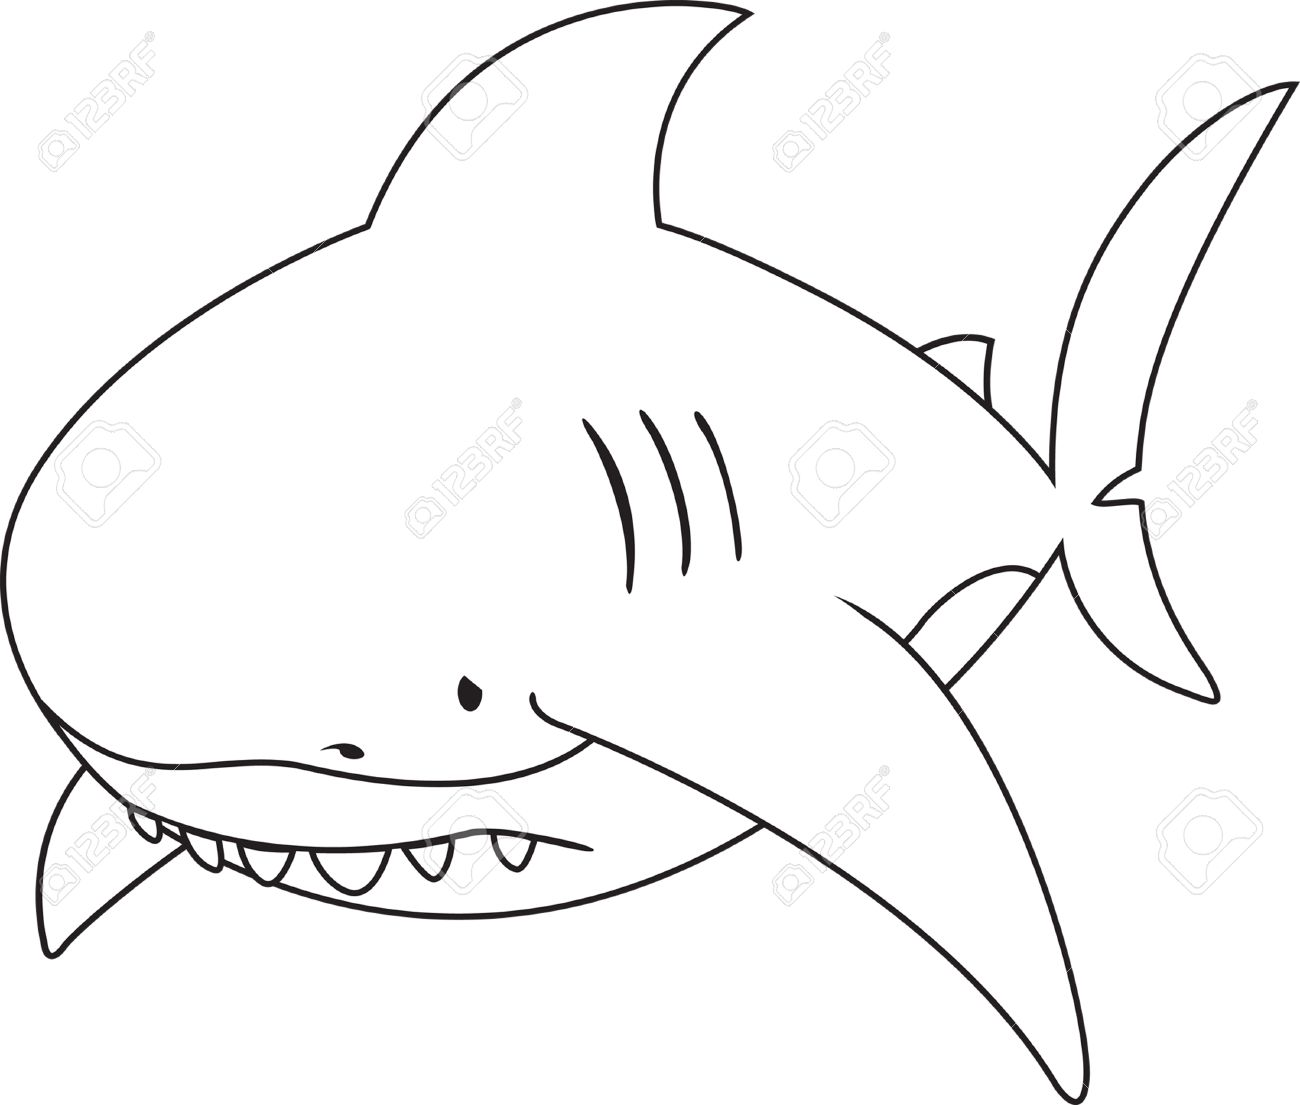 Sad Looking Great White Sharkcoloring Book Stock Vector